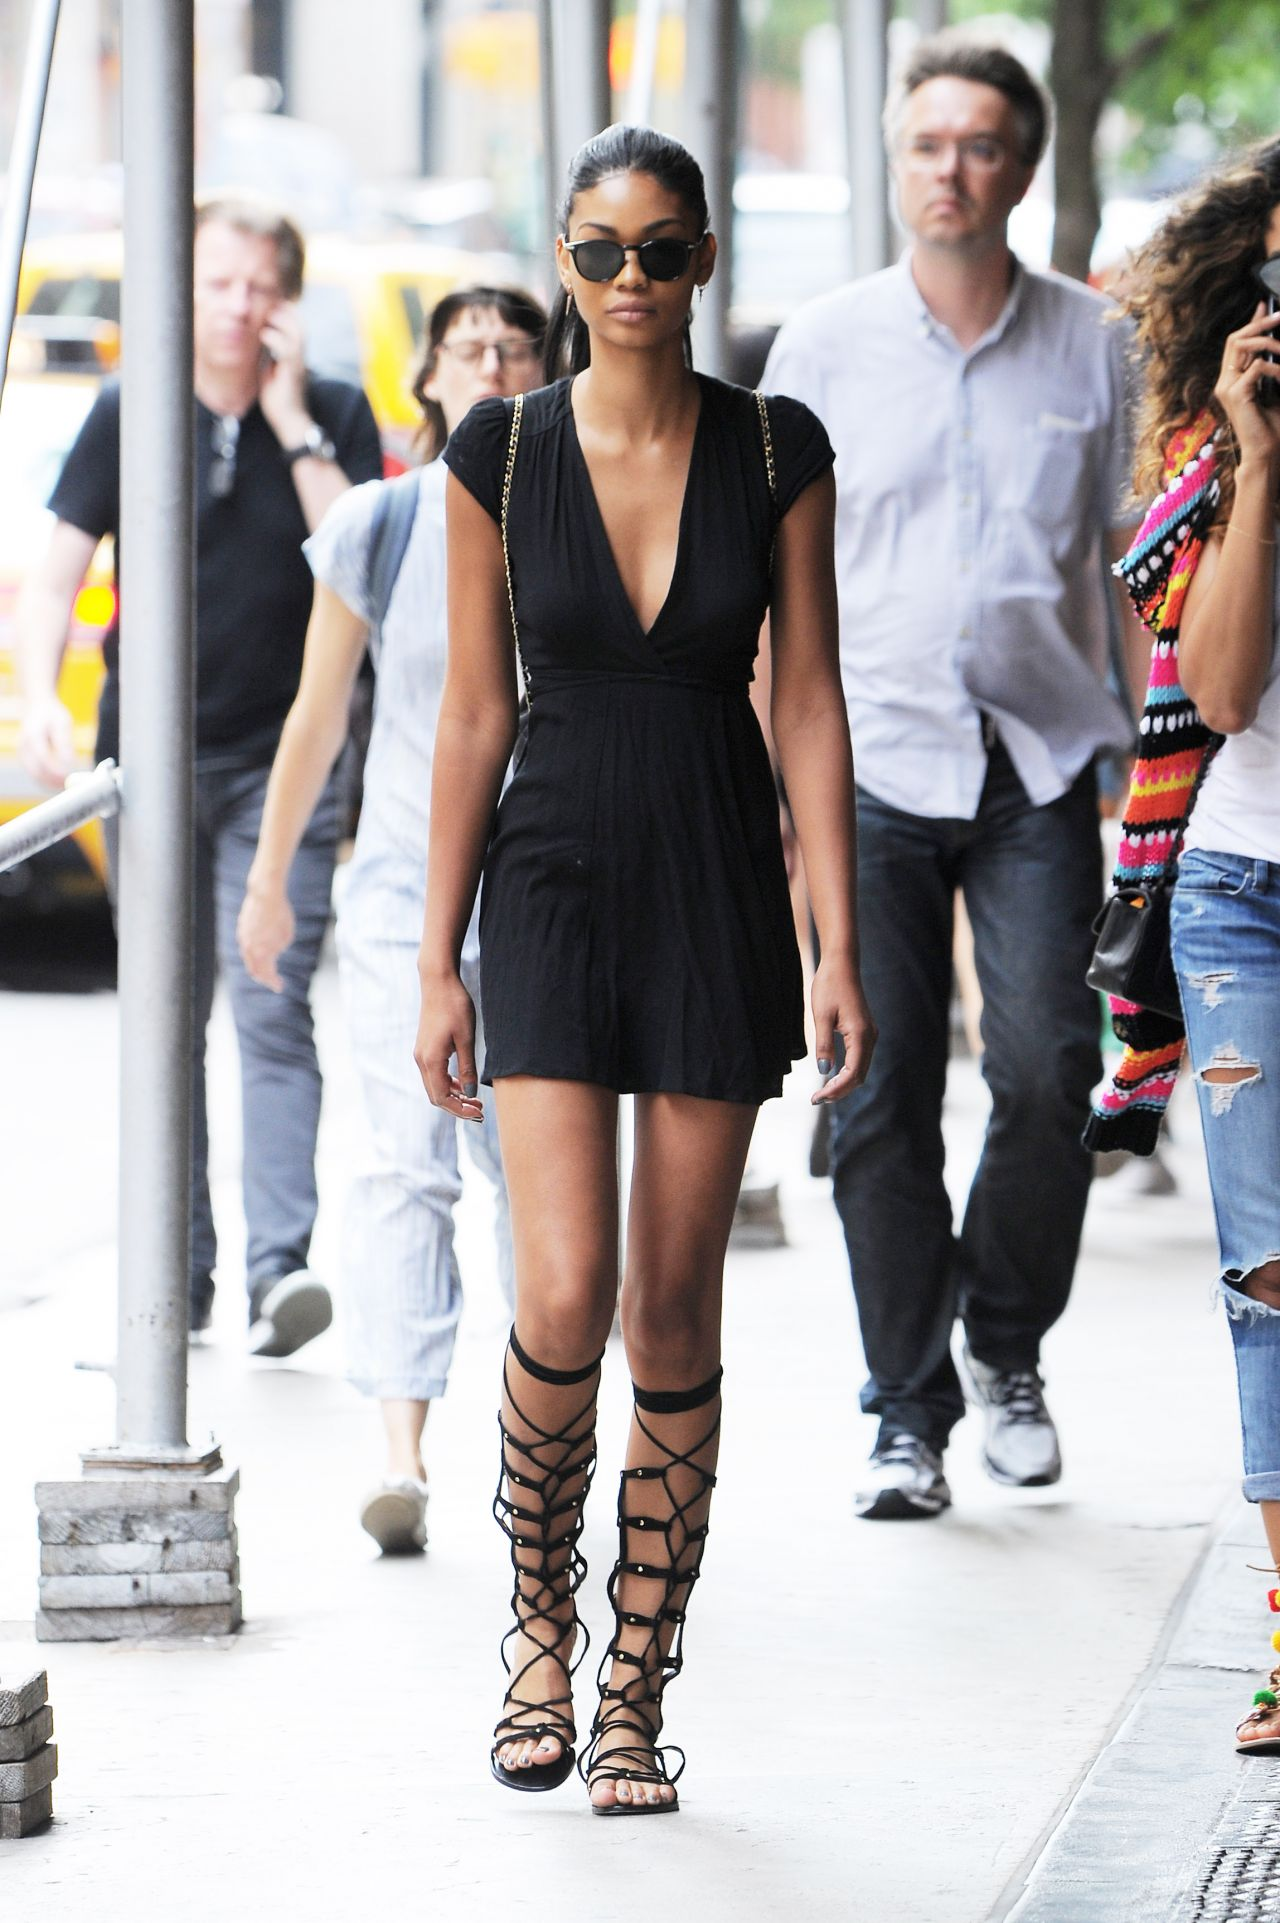 Chanel Iman Street Style Out In Manhattan In New York